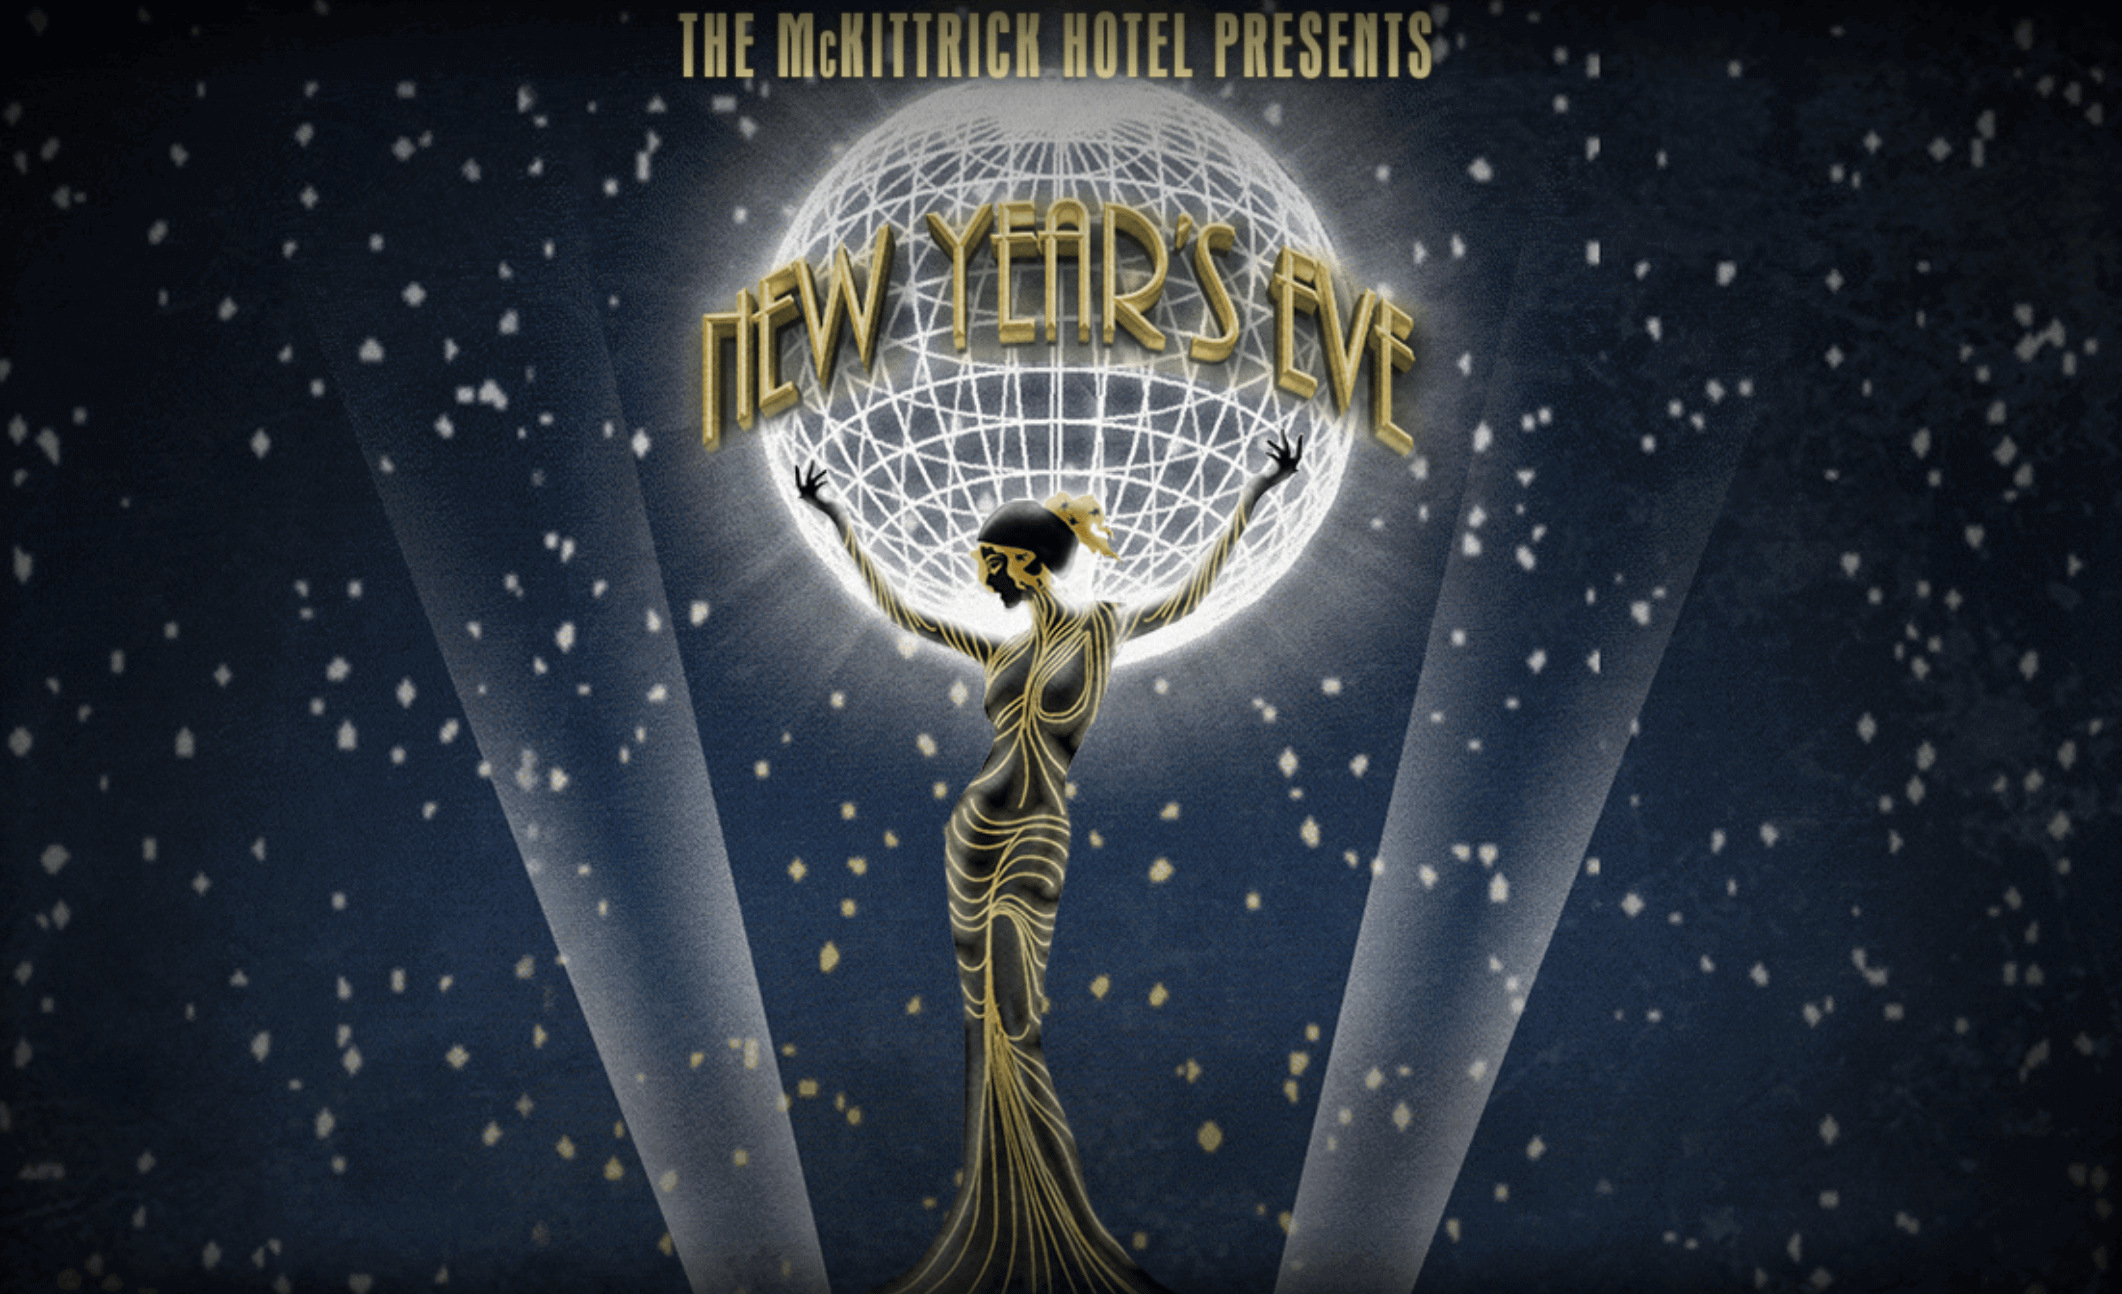 26 Best Parties In New York for New Years Eve 2020 McKittrick Hotel